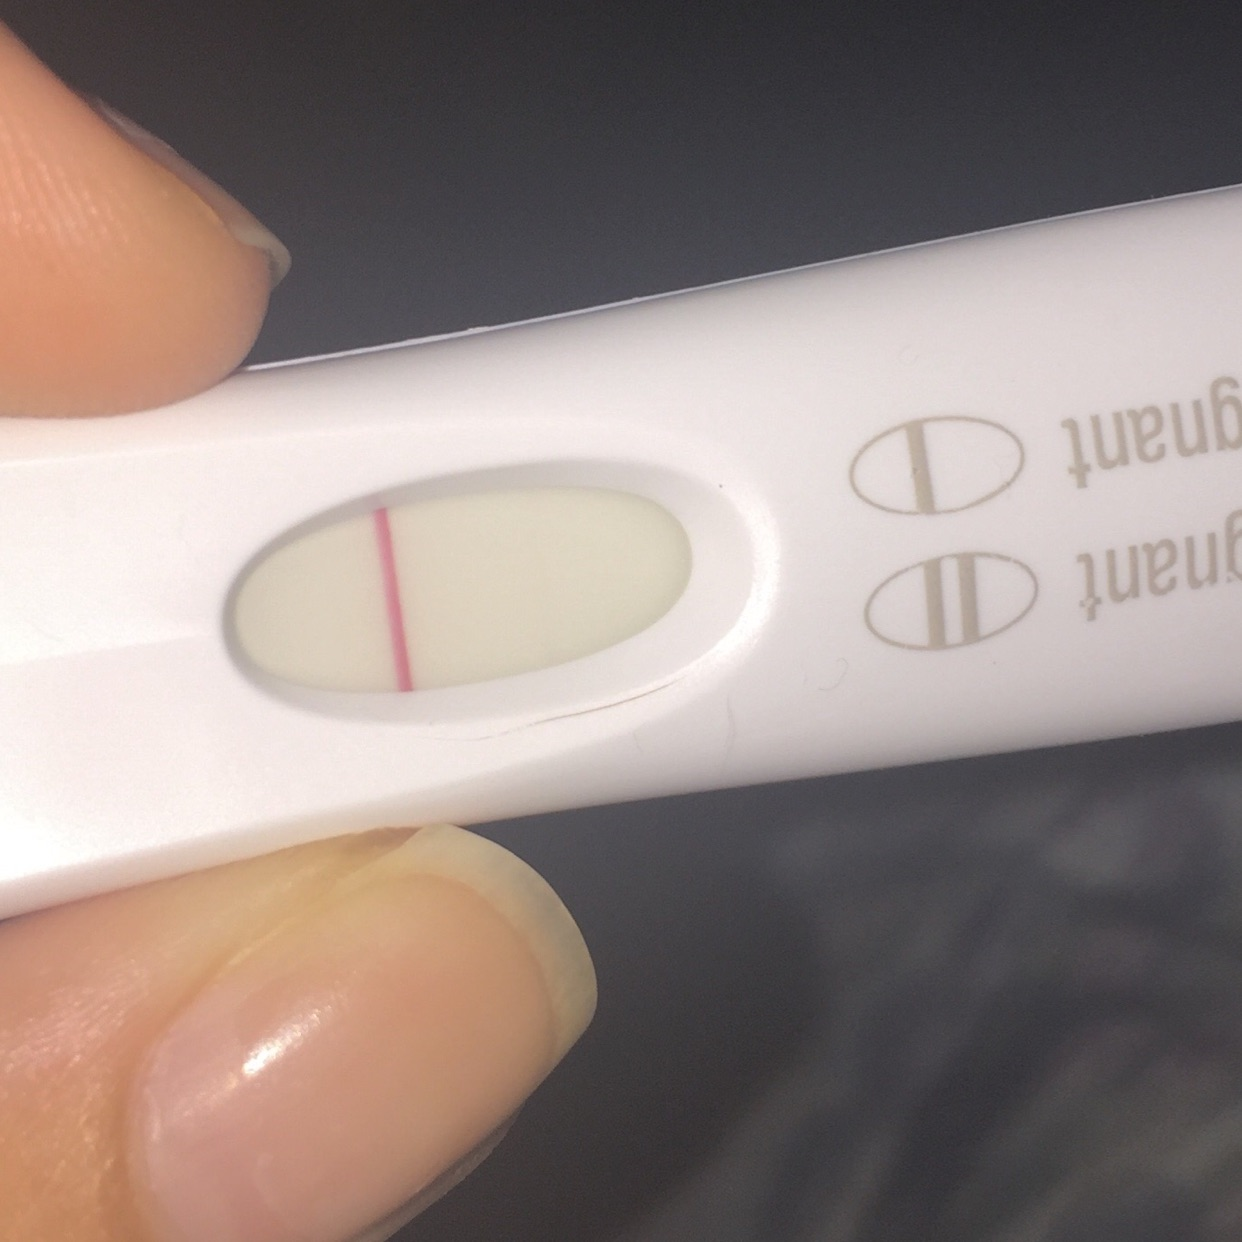 First Response Early Result Pregnancy Test Faint Line